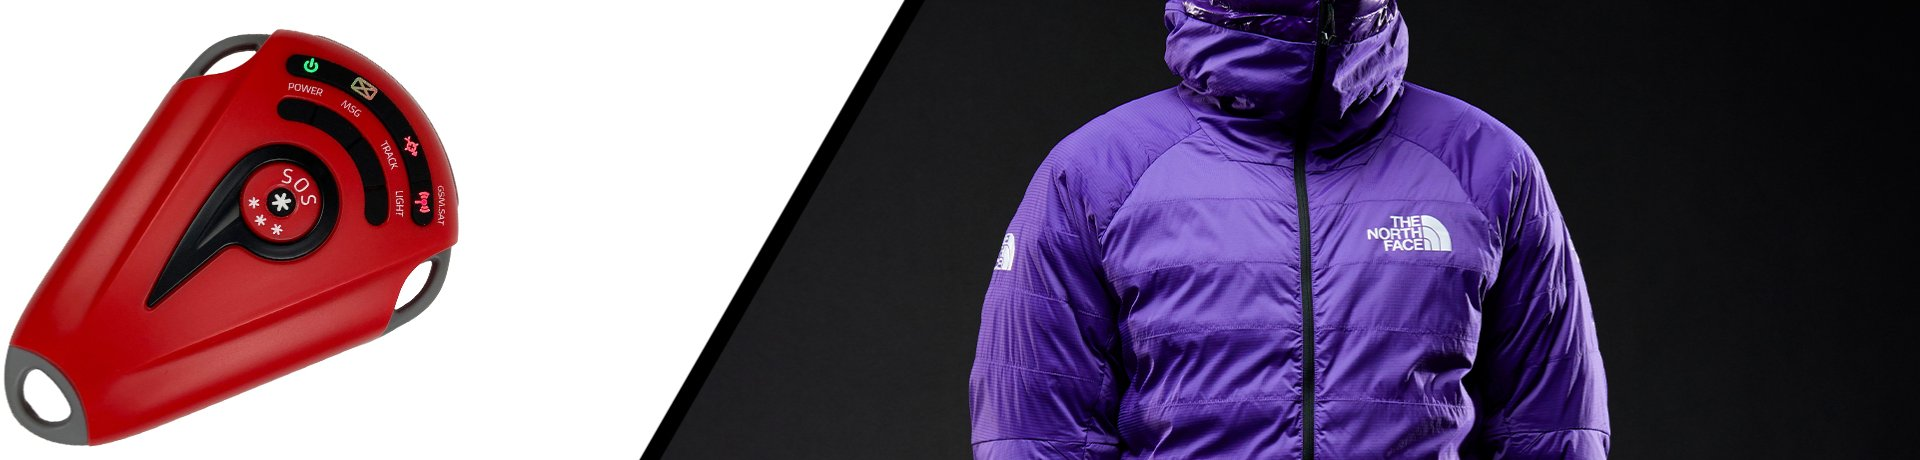 ProteGear und The NORTH FACE Header